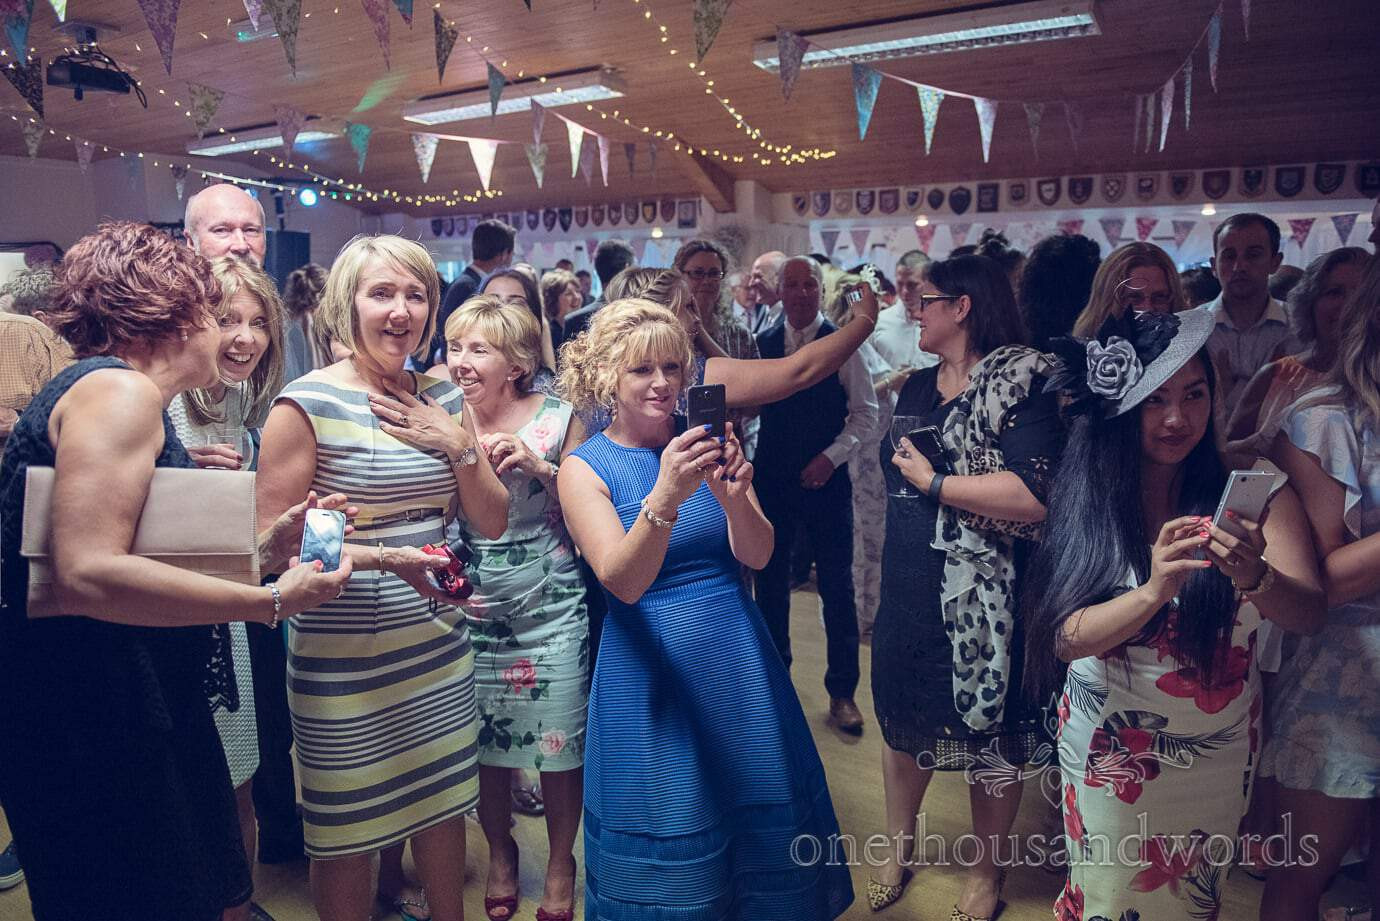 Wedding guests at Wareham Rugby Club Wedding take photographs of bride and groom